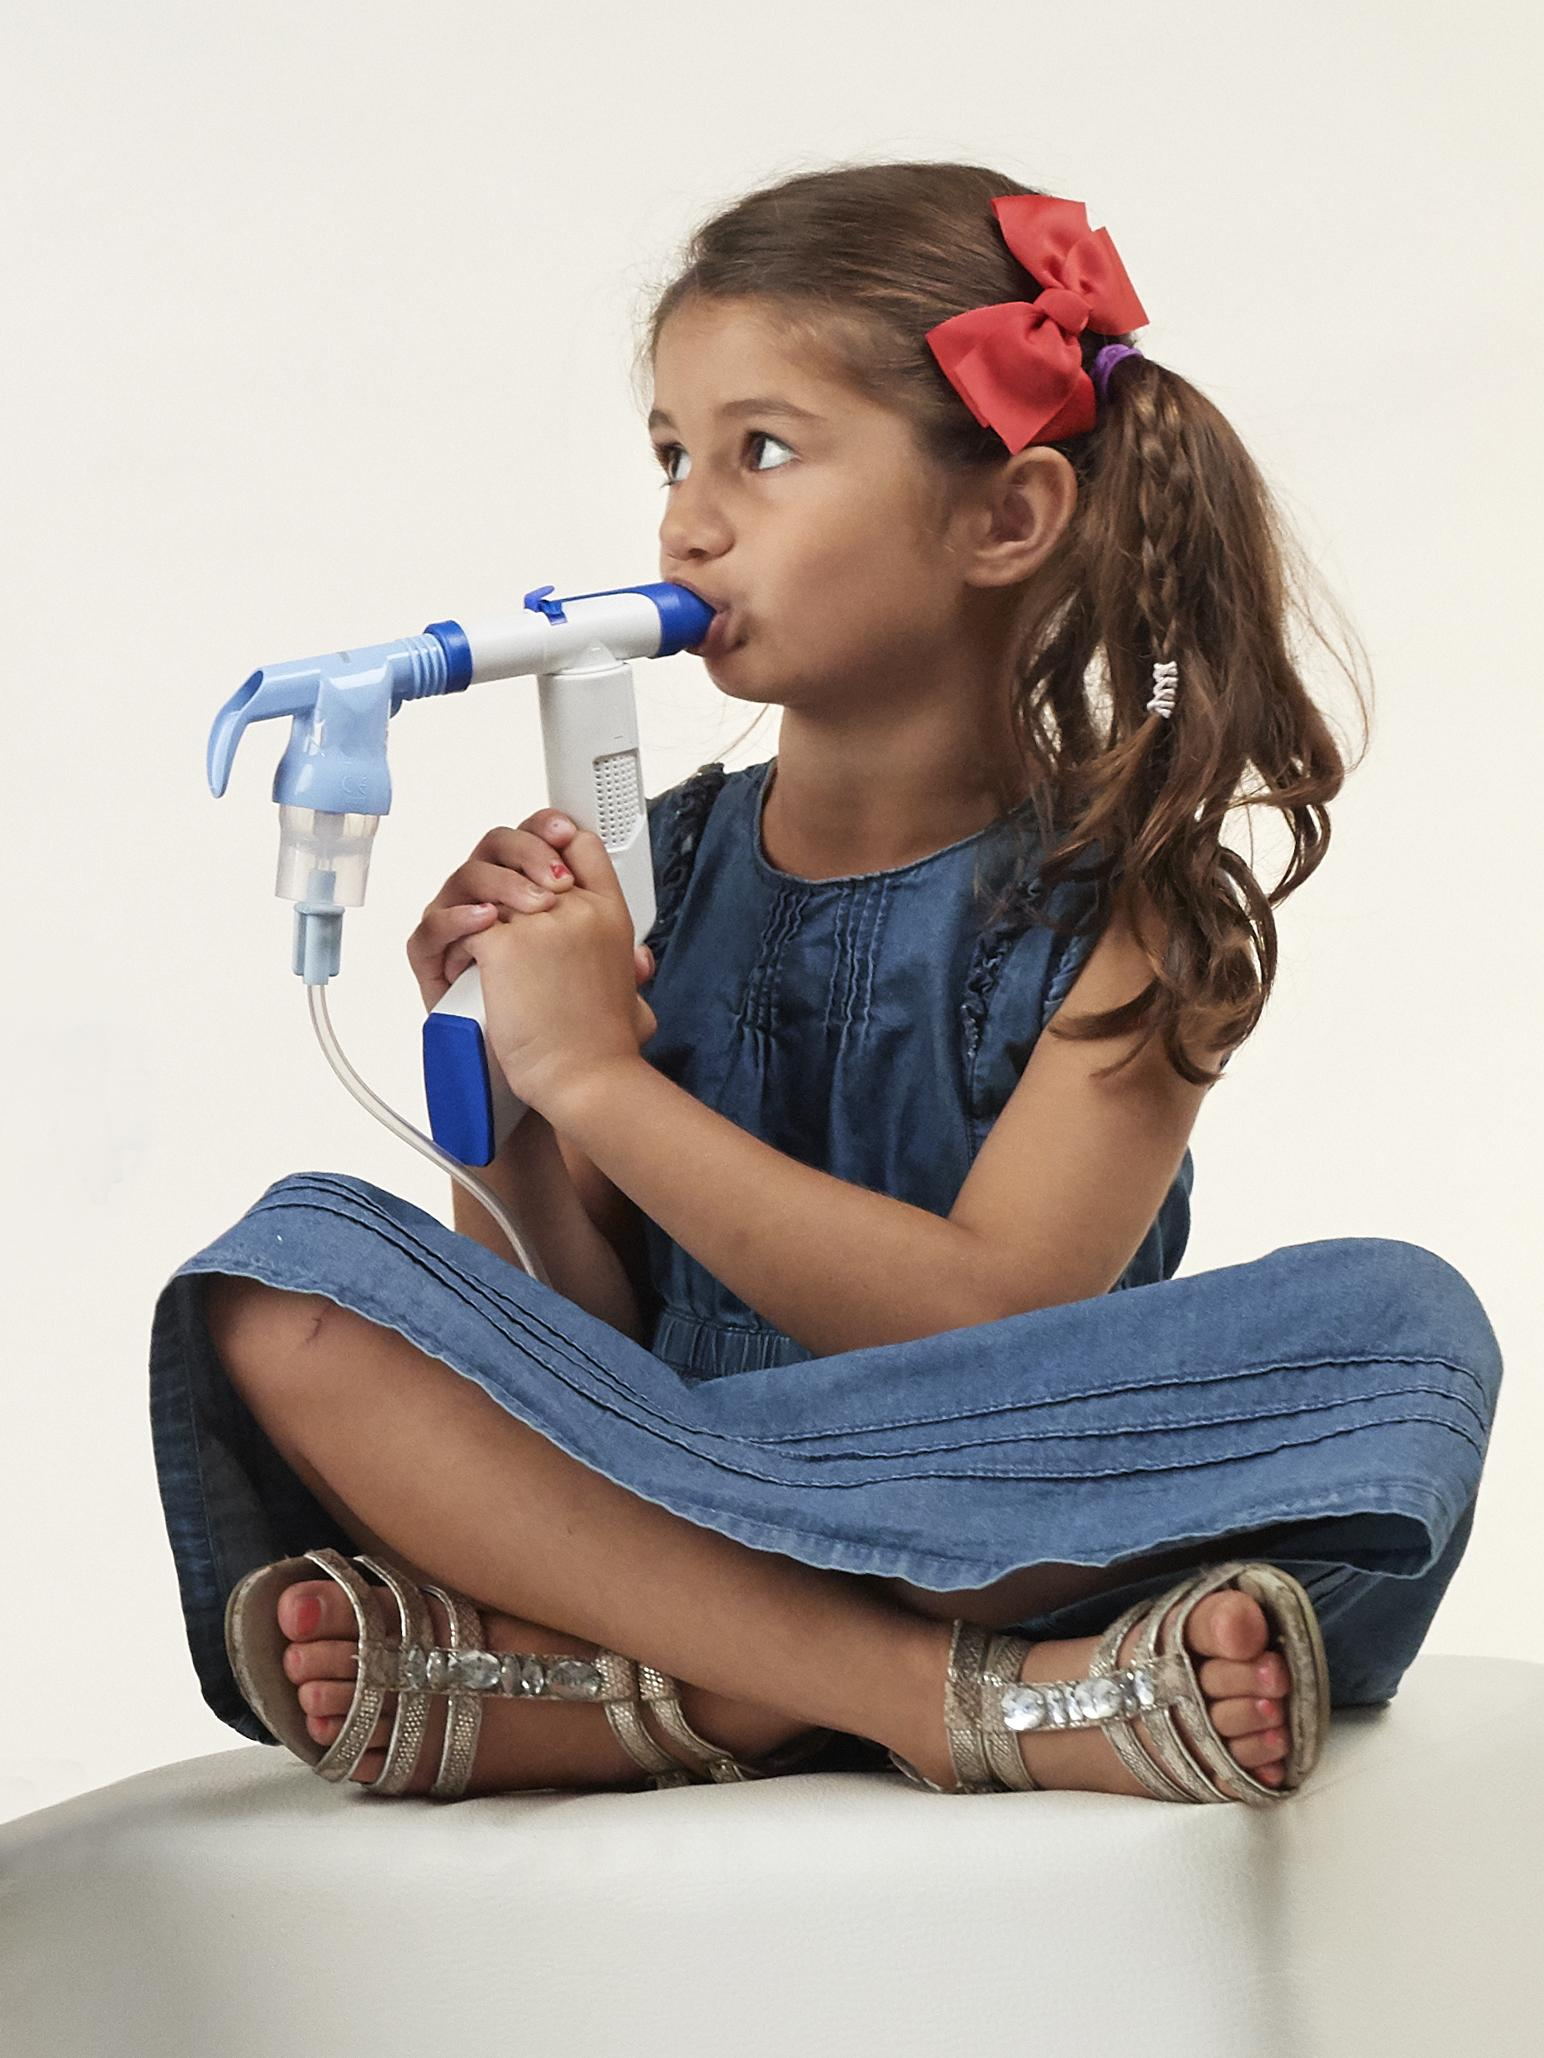 RC Cornet PLUS in use with Nebulizer